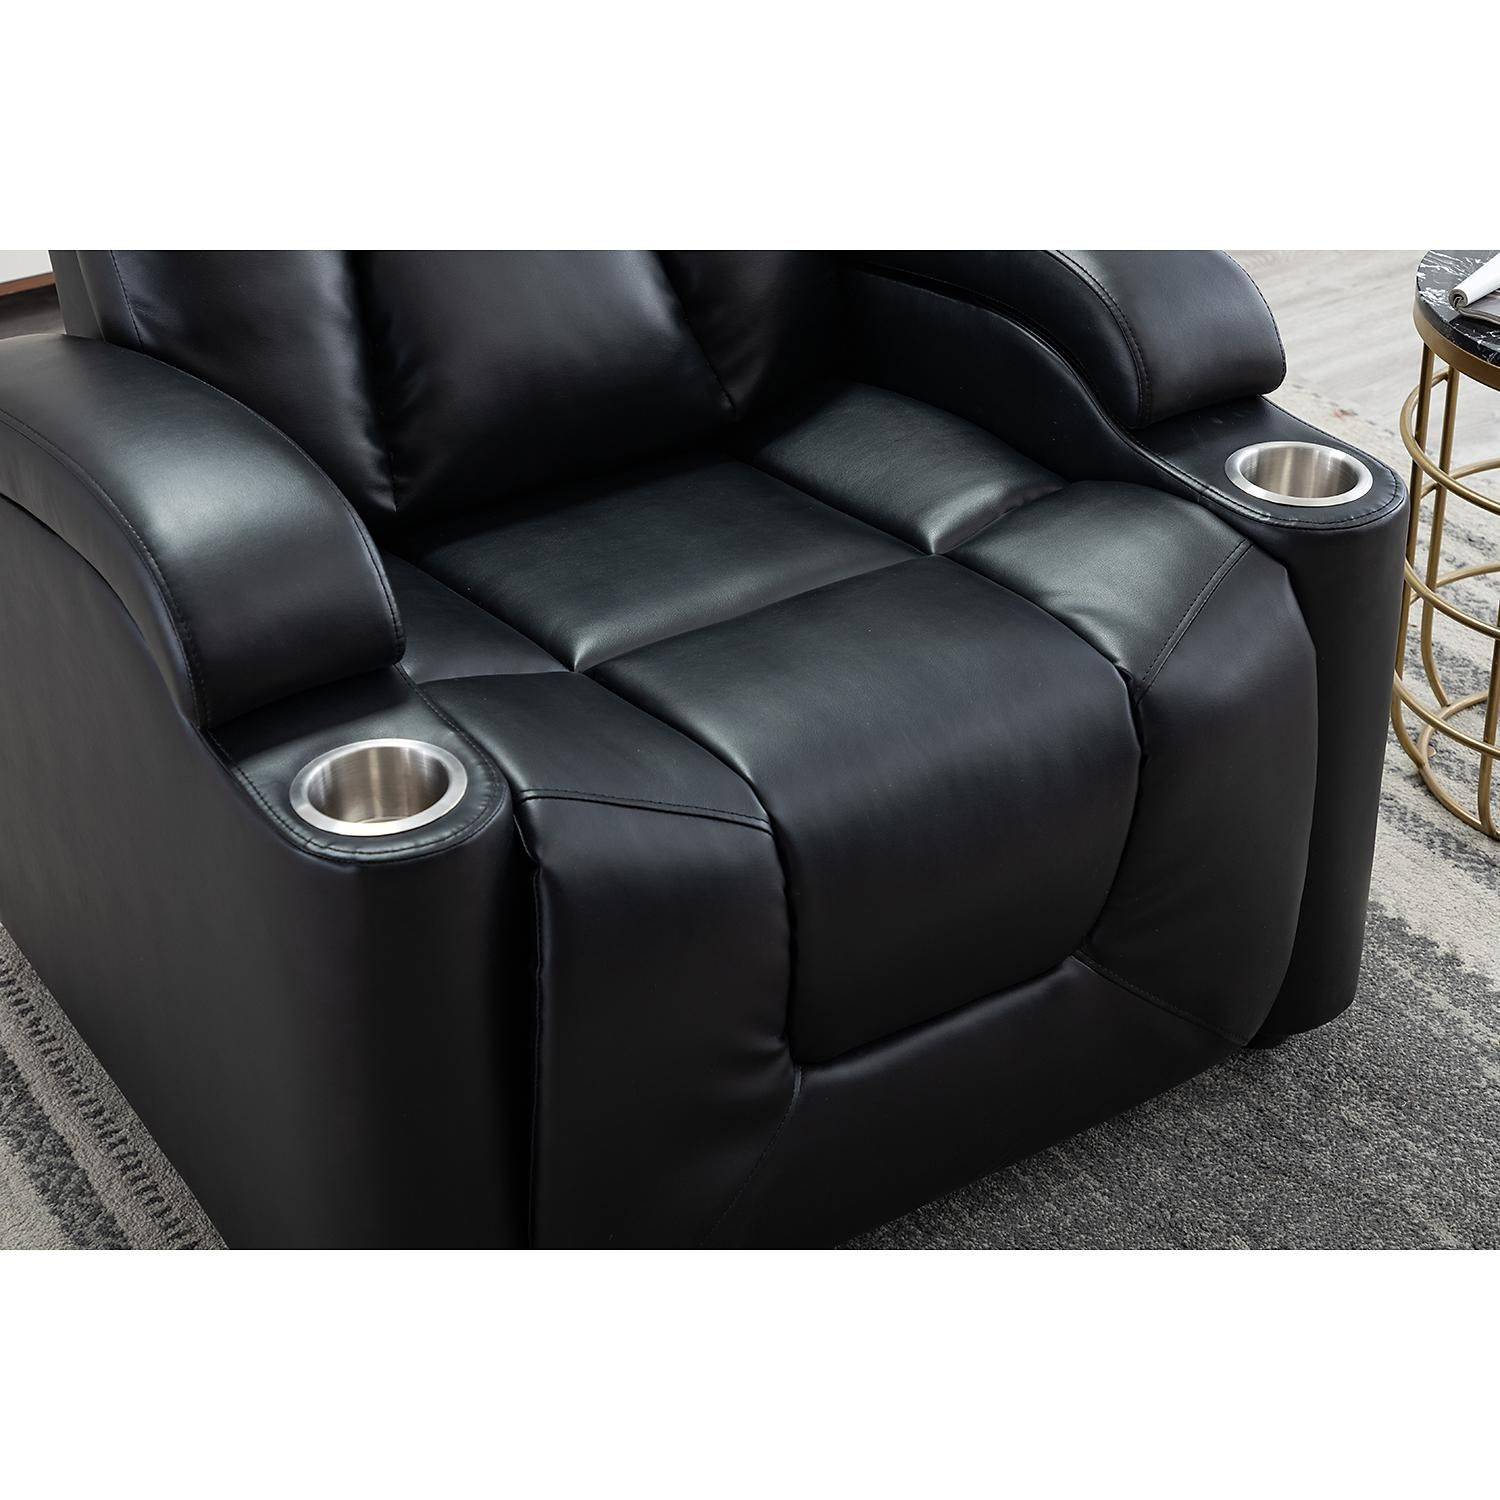 Gaming Massage Chair (Assorted Colors) Sam's Club in